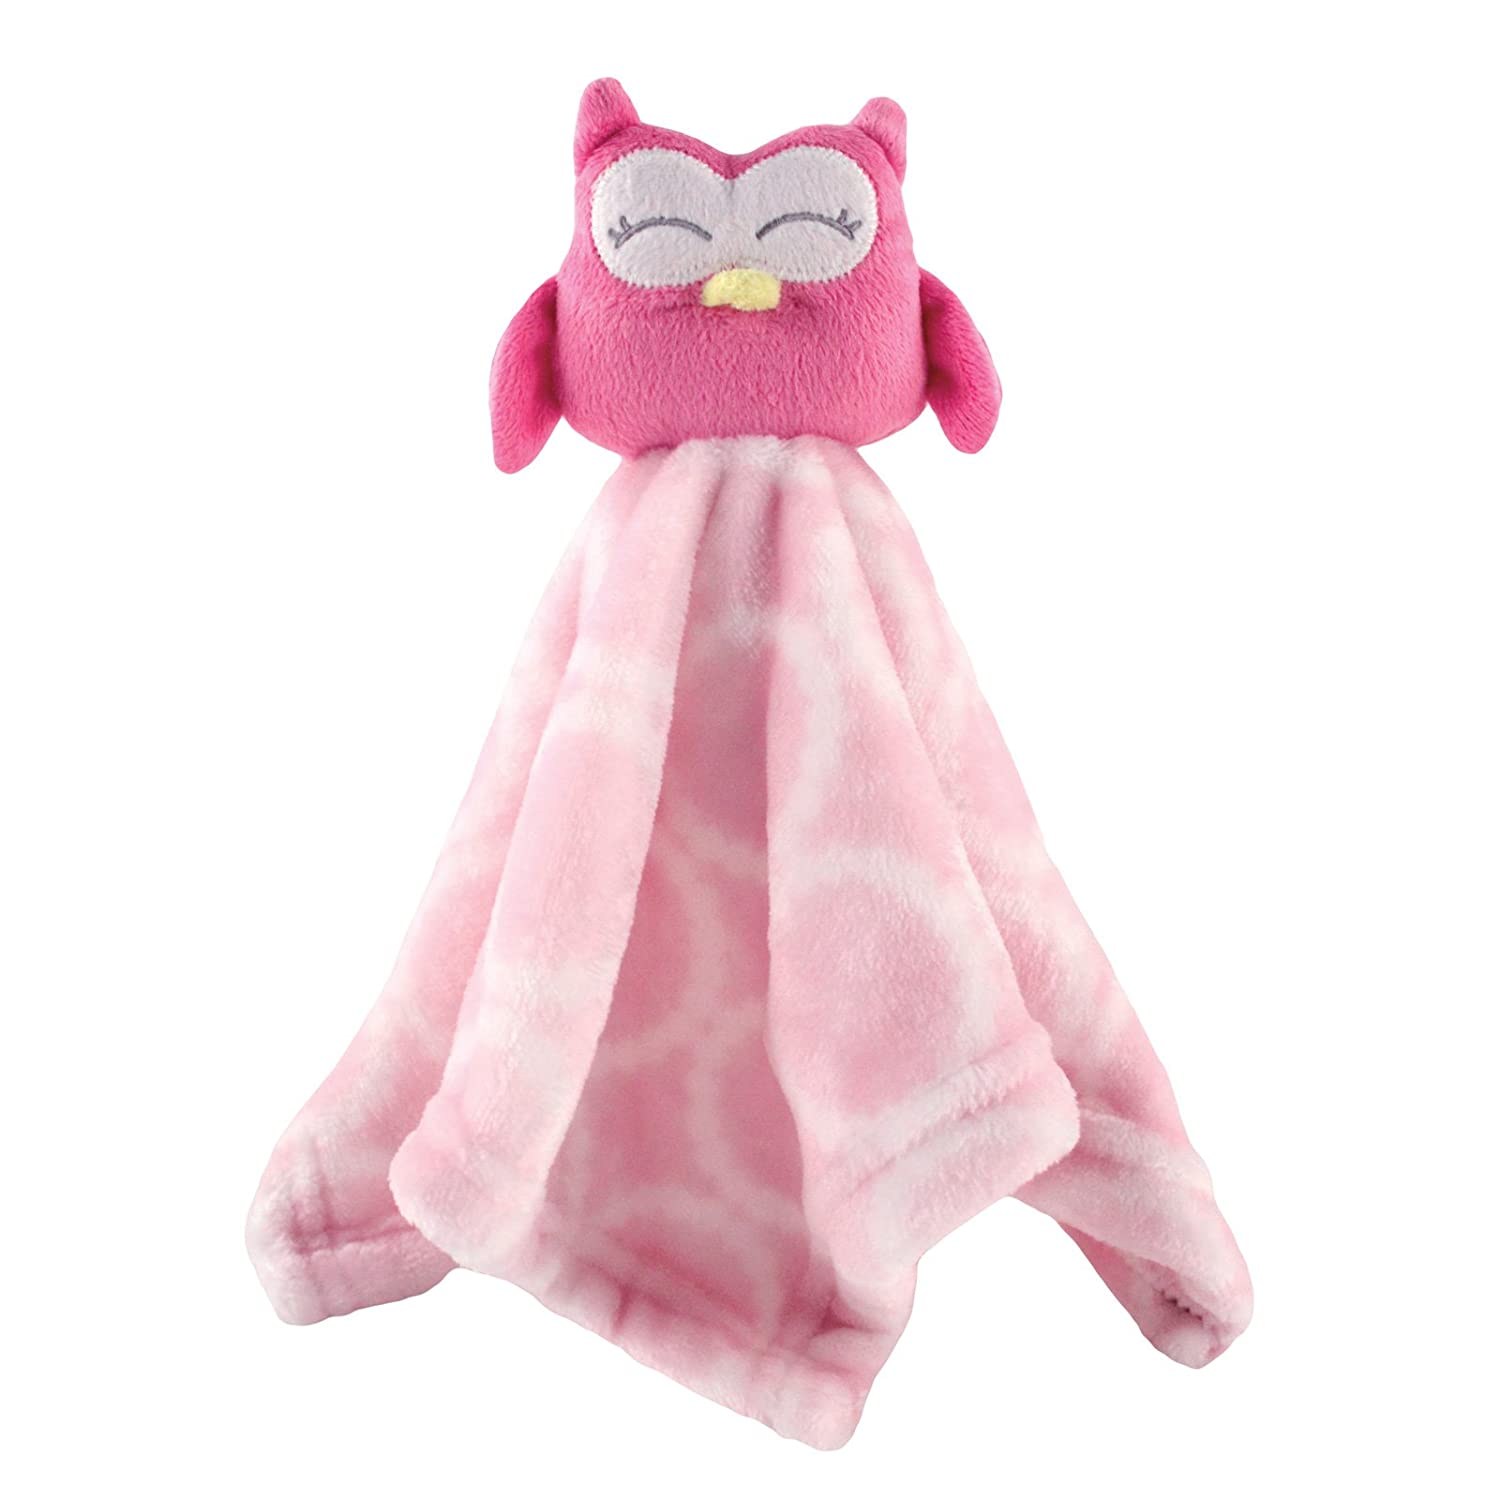 Hudson Baby Animal Friend Plushy Security Blanket, Pink Owl BabyVision 50589_PinkOwl